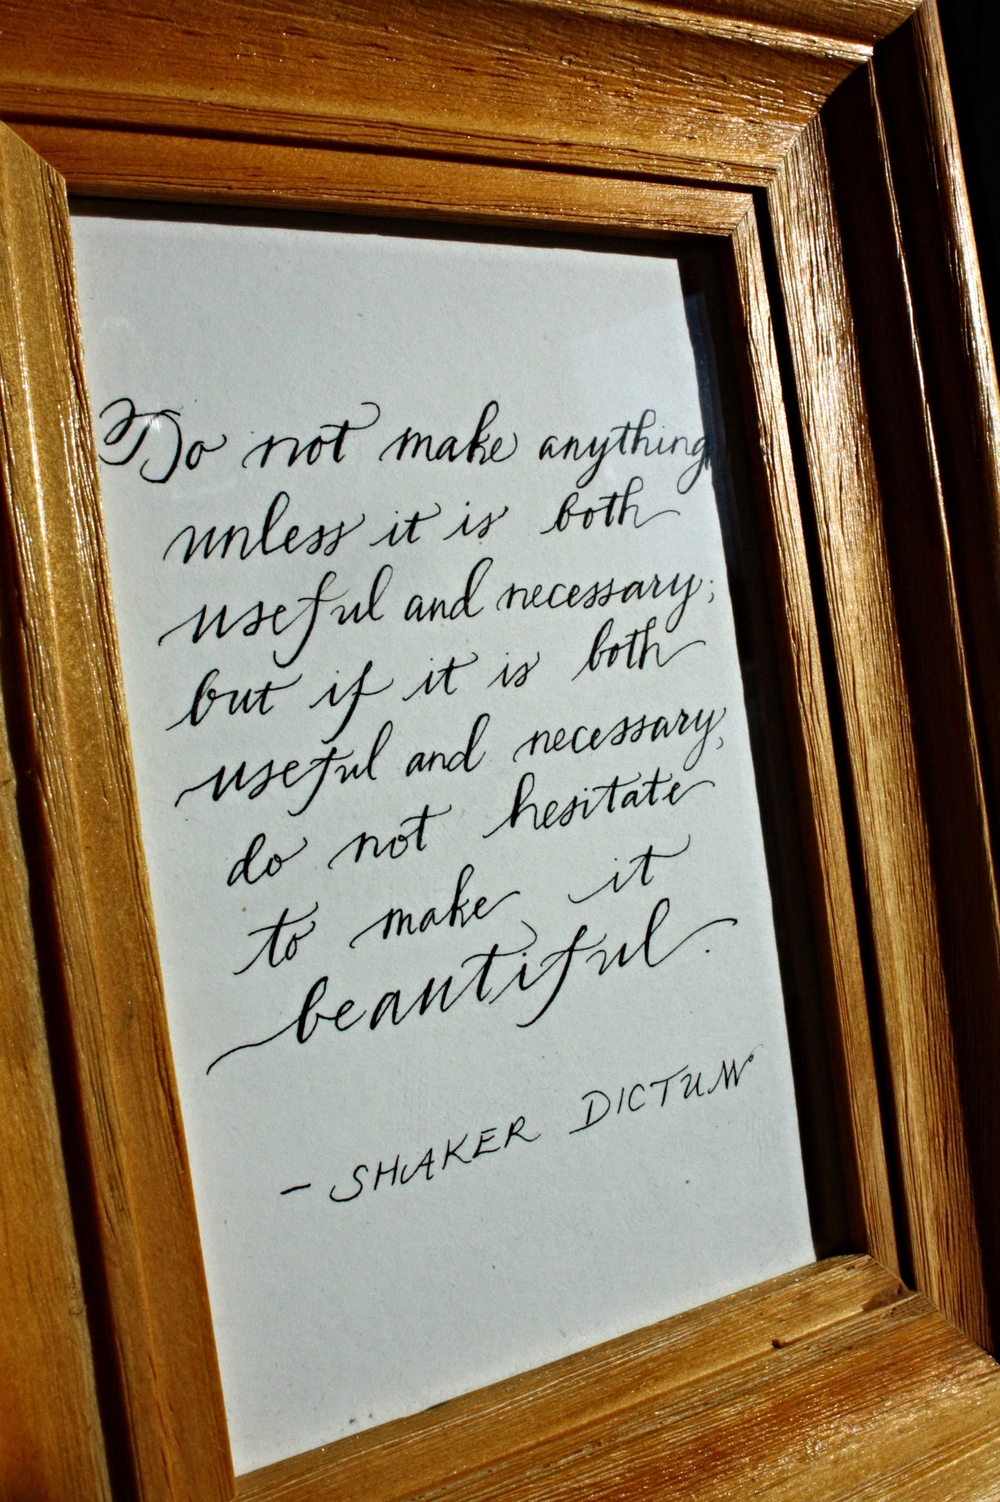 Shaker dictum for my beloved Gran.